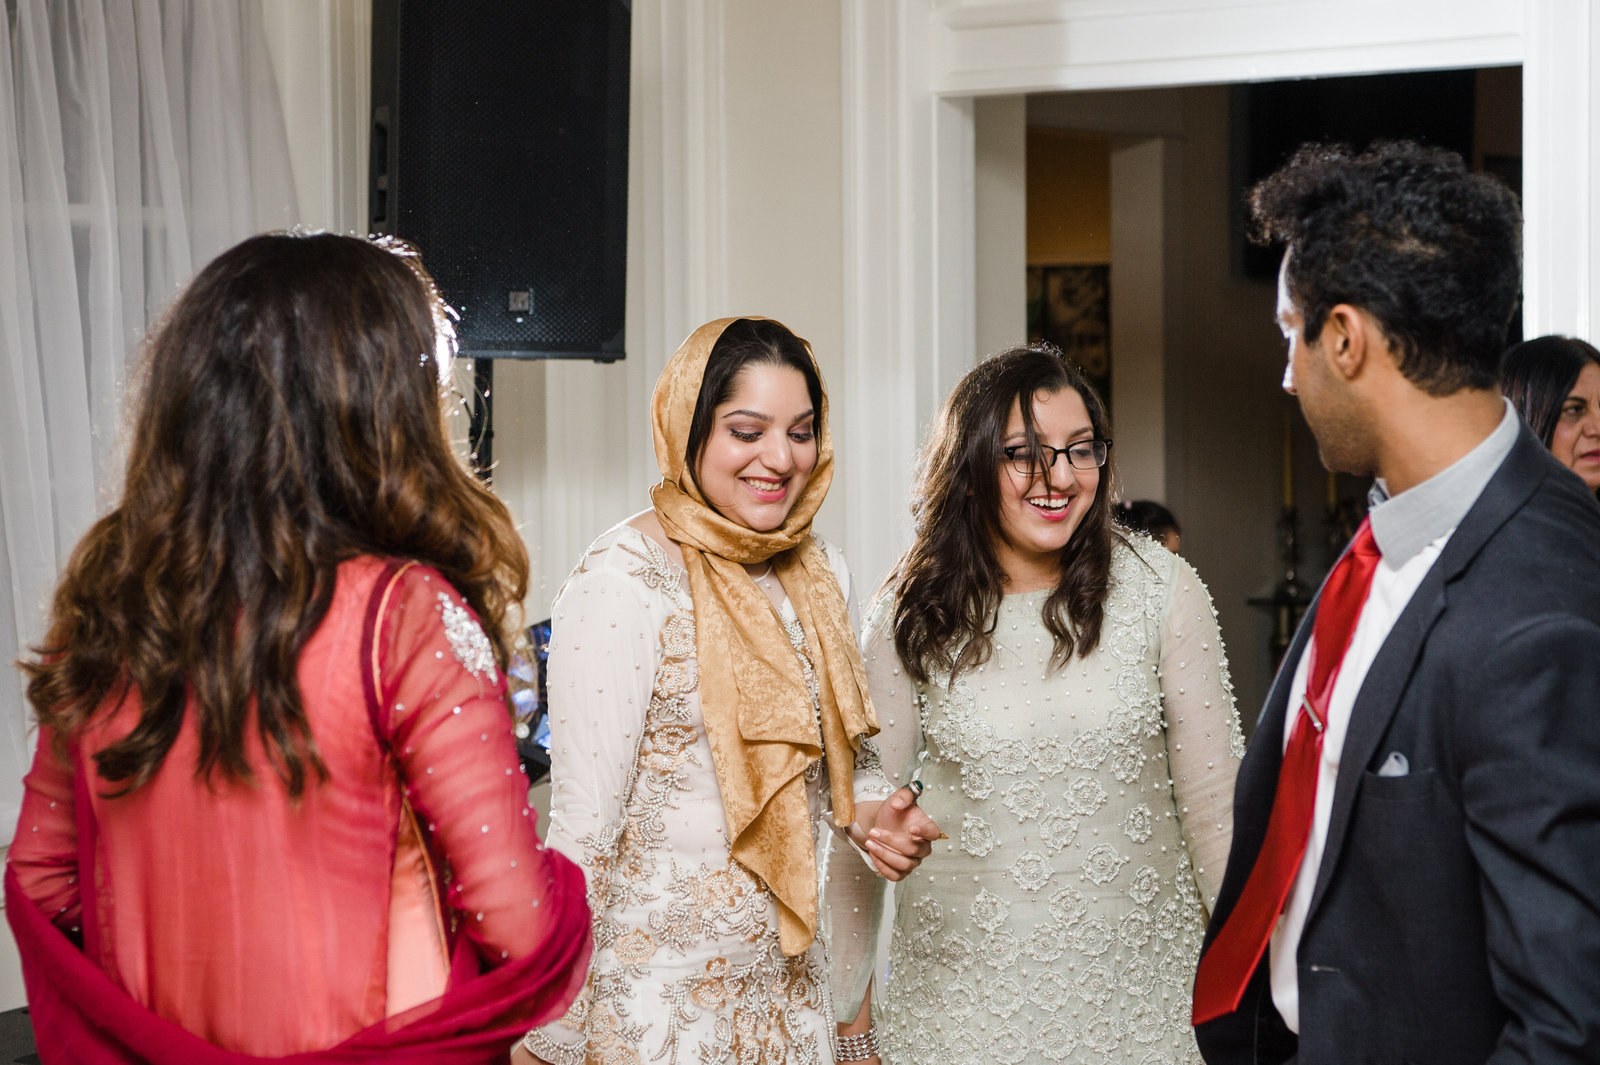 Minhas-Sohail Wedding by The Hill Studios-545